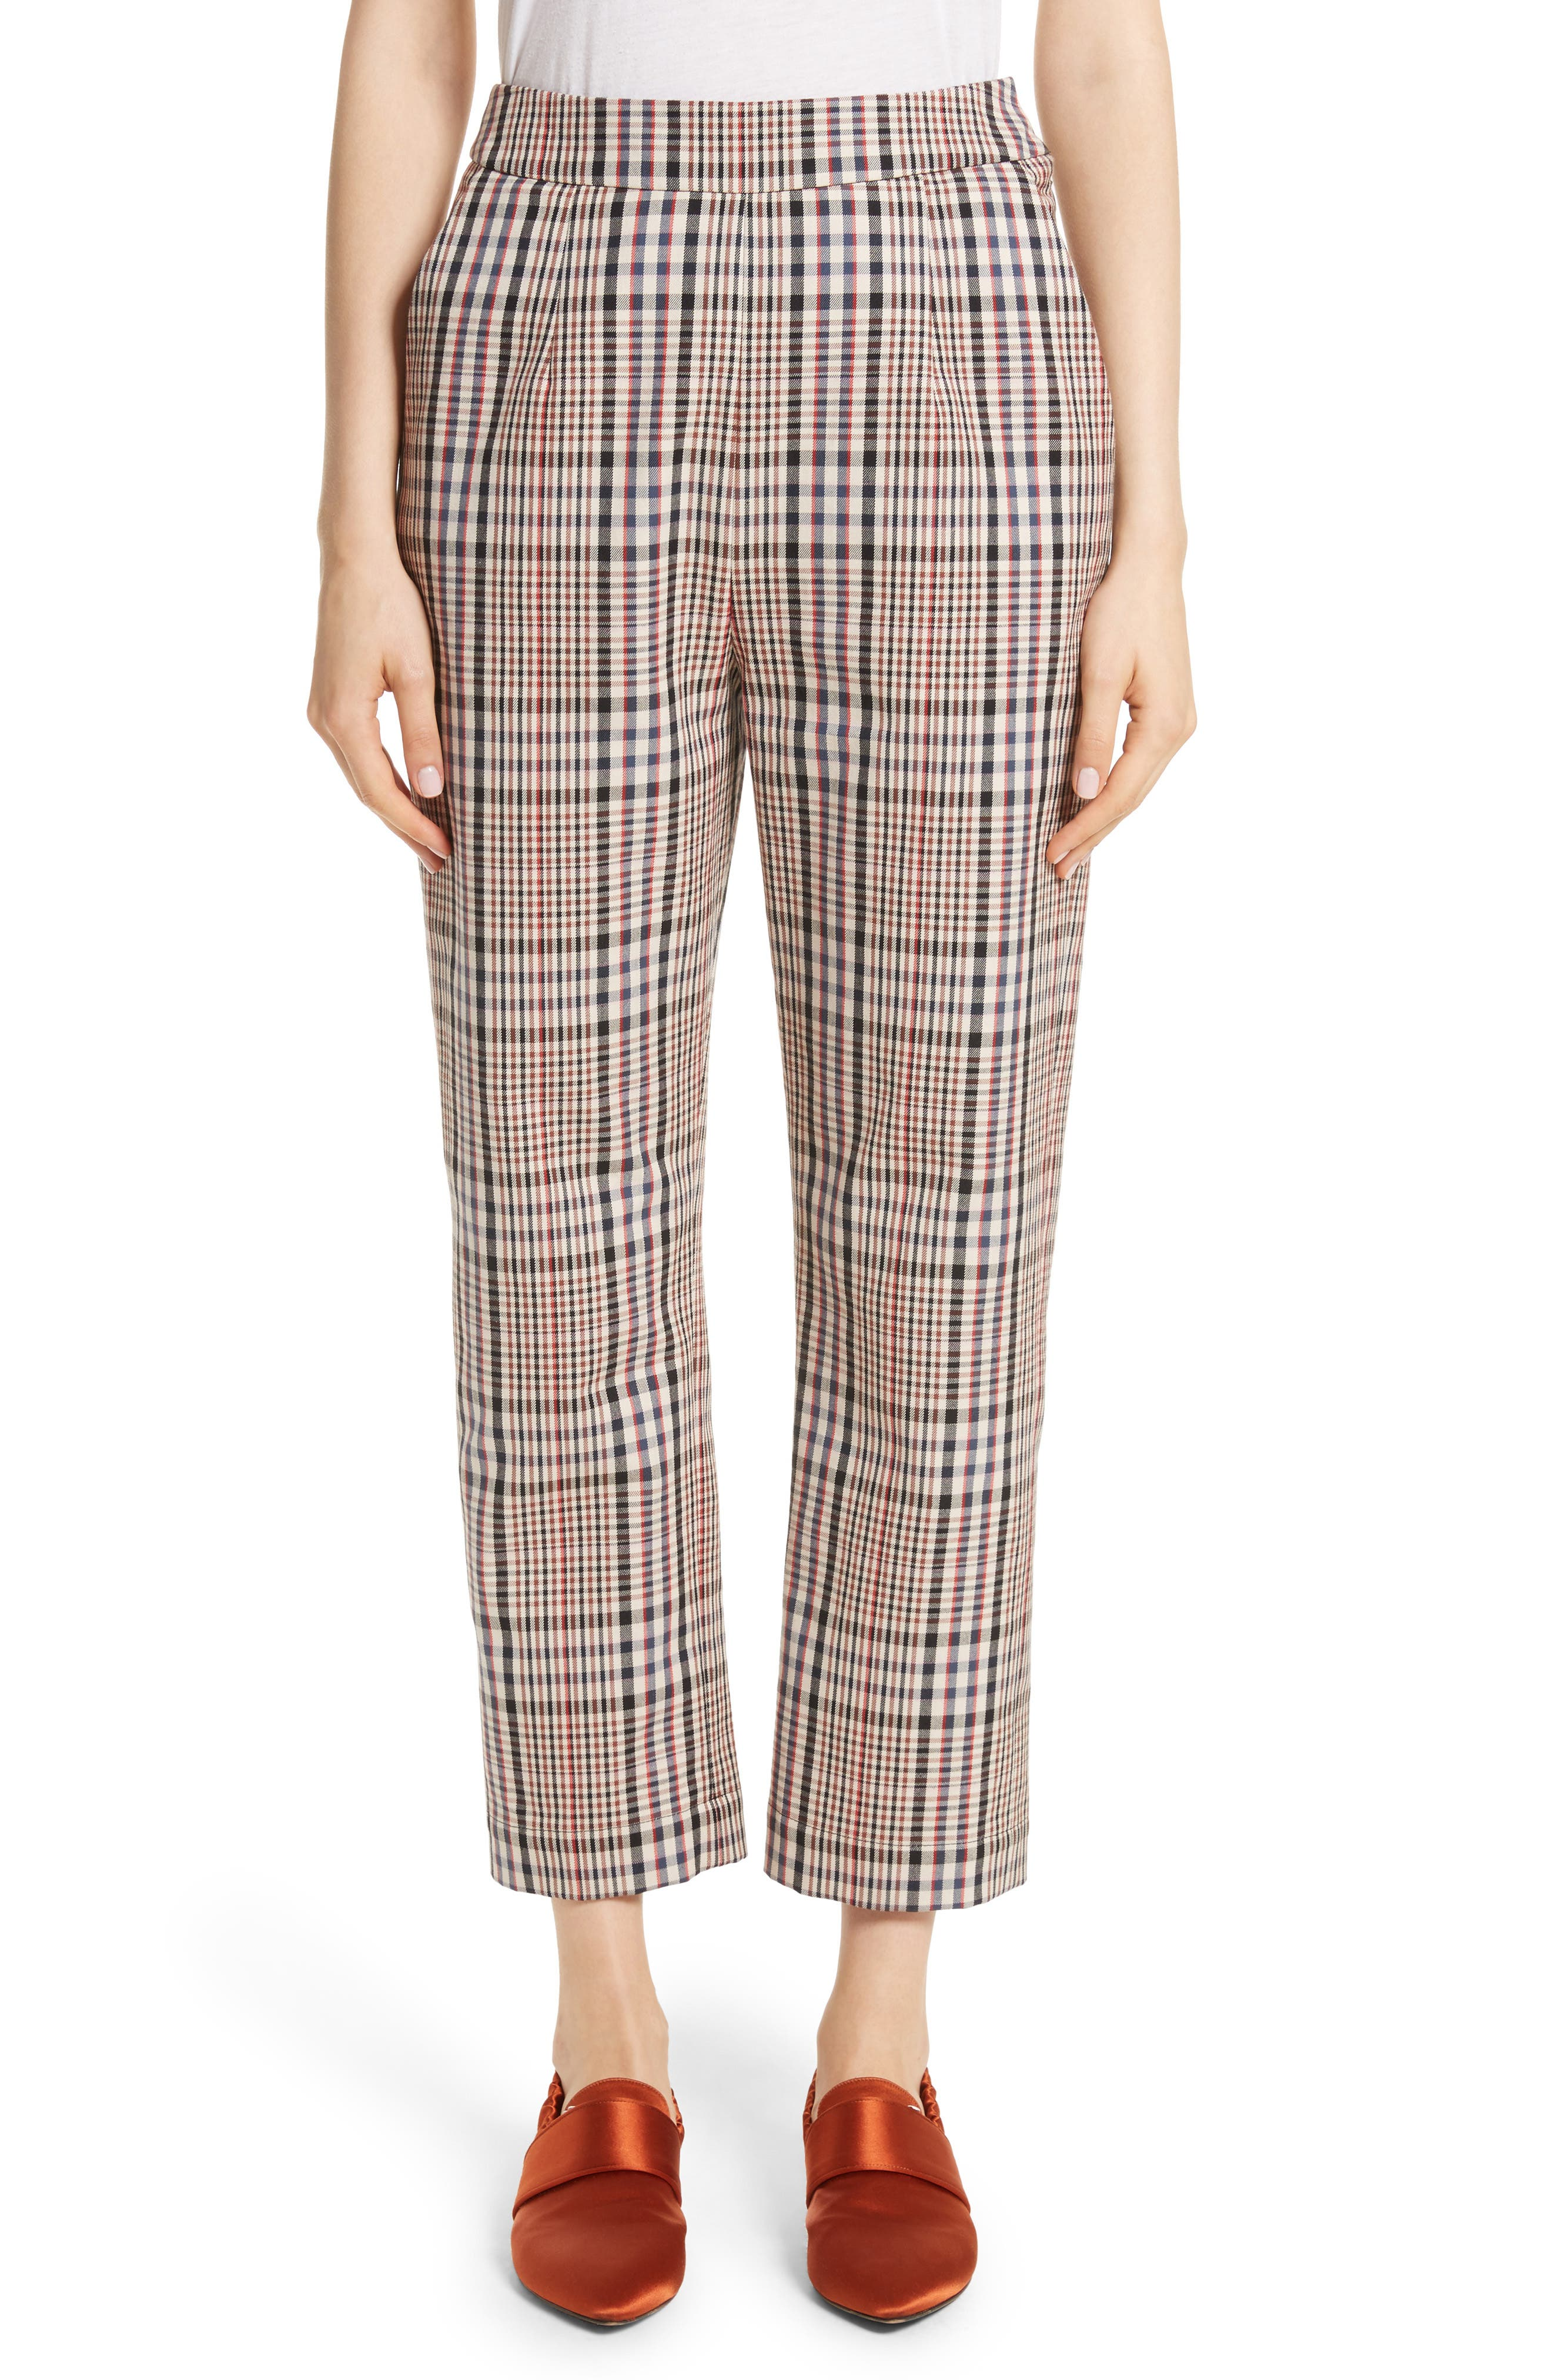 Alternate Image 1 Selected - Isa Arfen Classic Pantalone Crop Pants